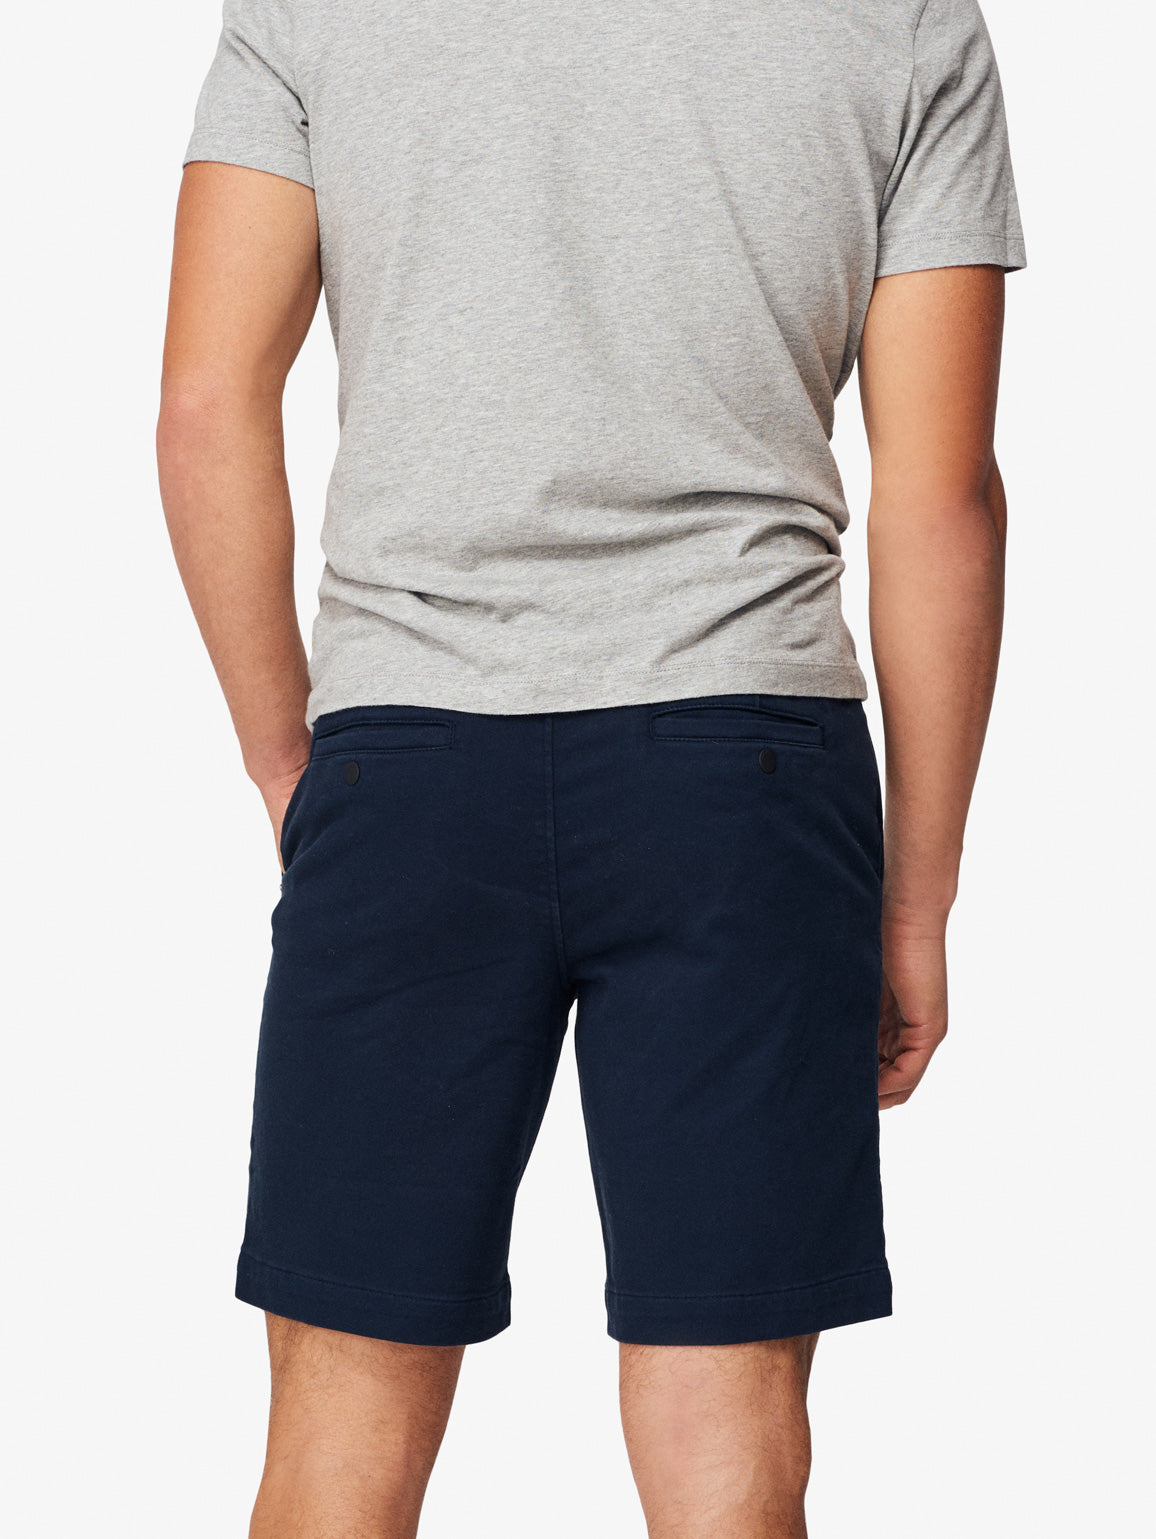 Jake Chino Short | Surface DL 1961 Denim